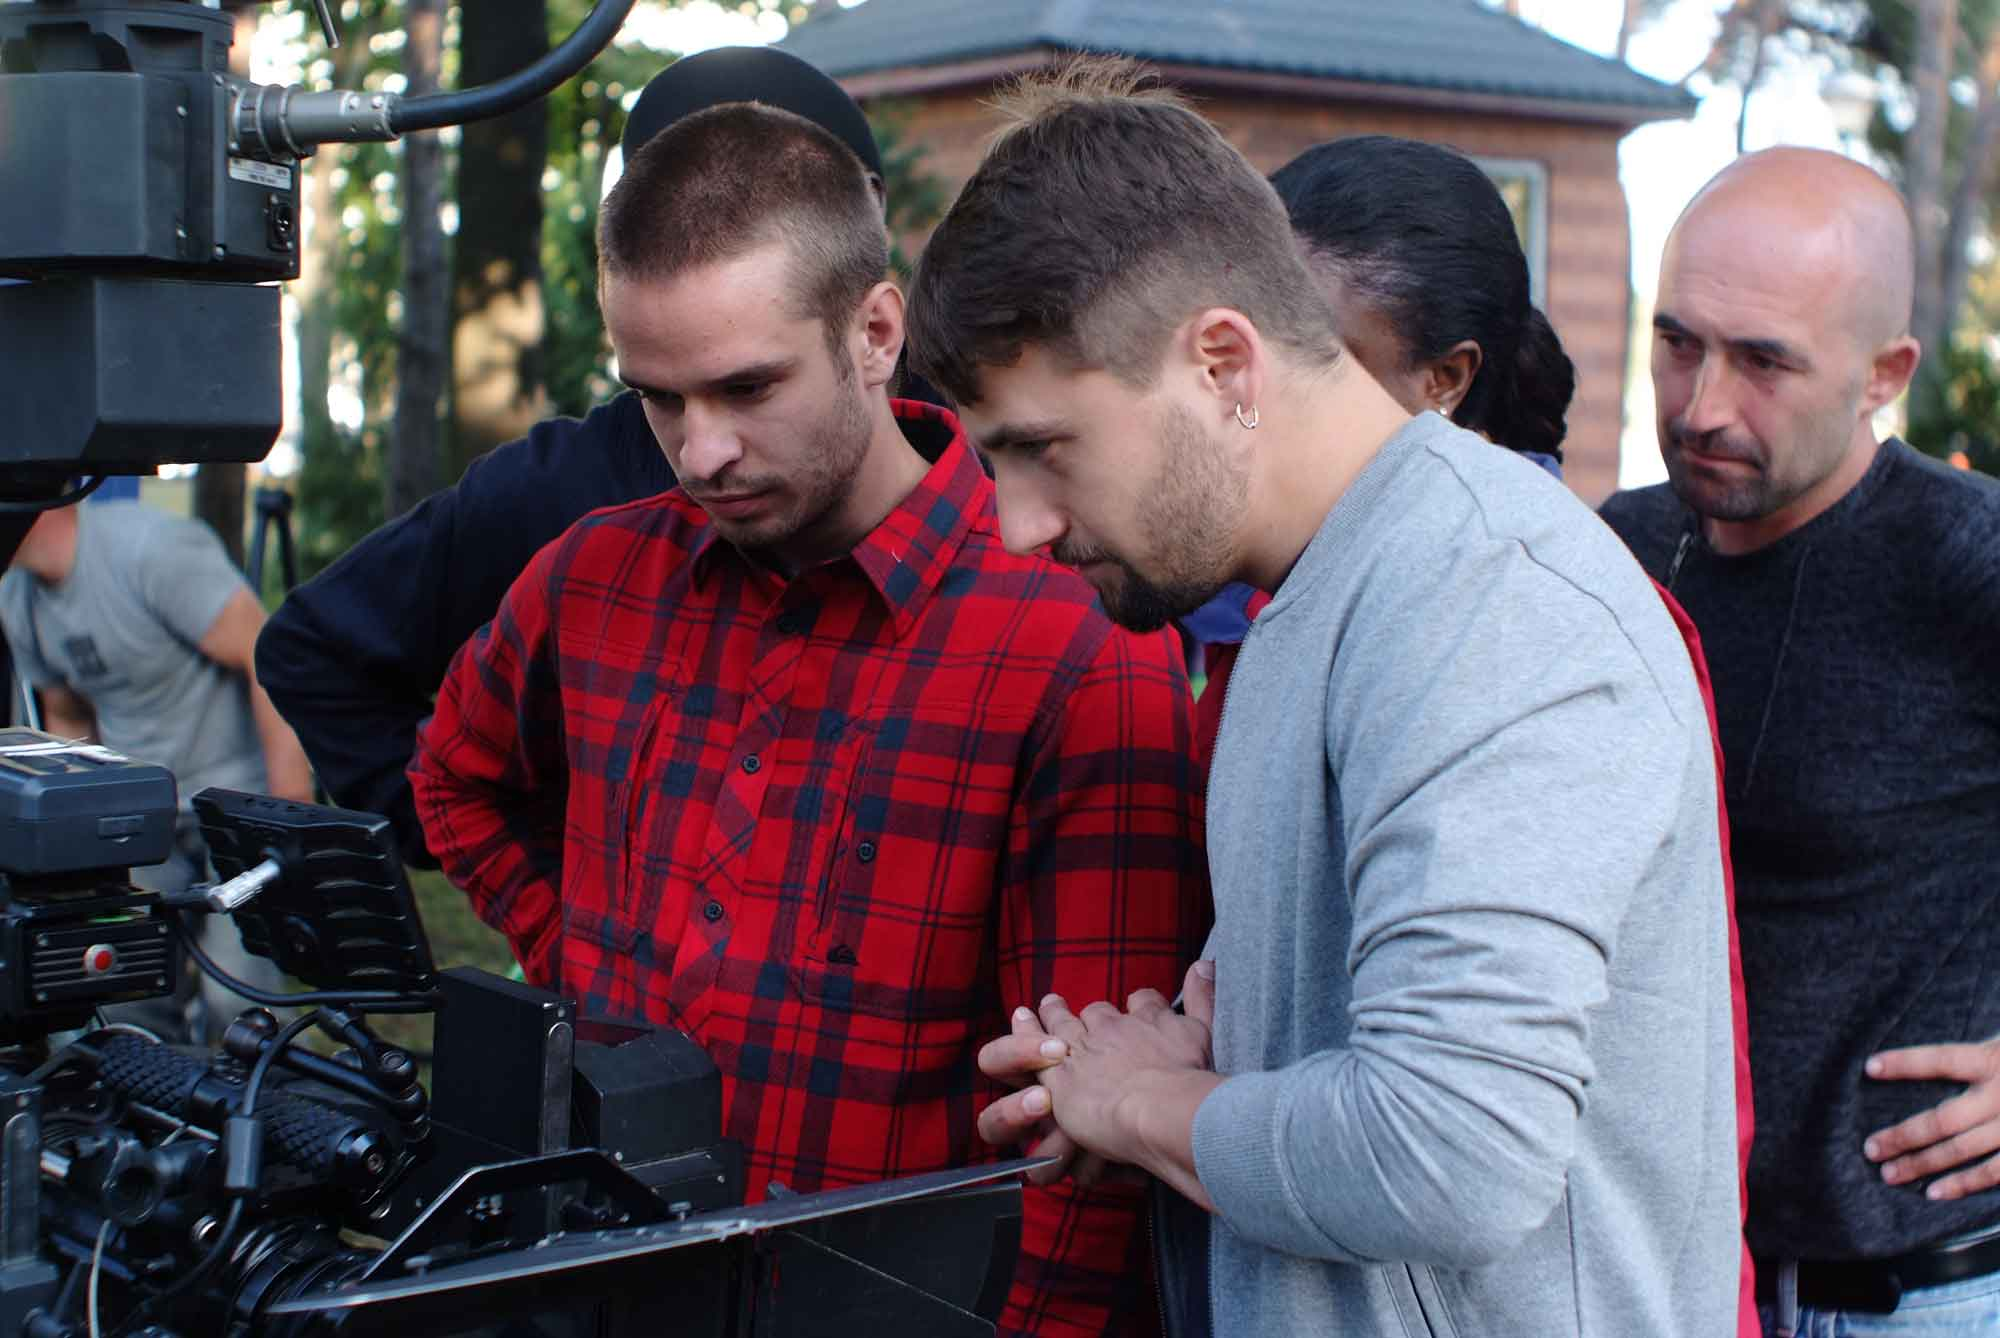 Andrew Rozhen (Director) and Dmitriy Nedria (DOP): Reviewing shot (playback) of scene